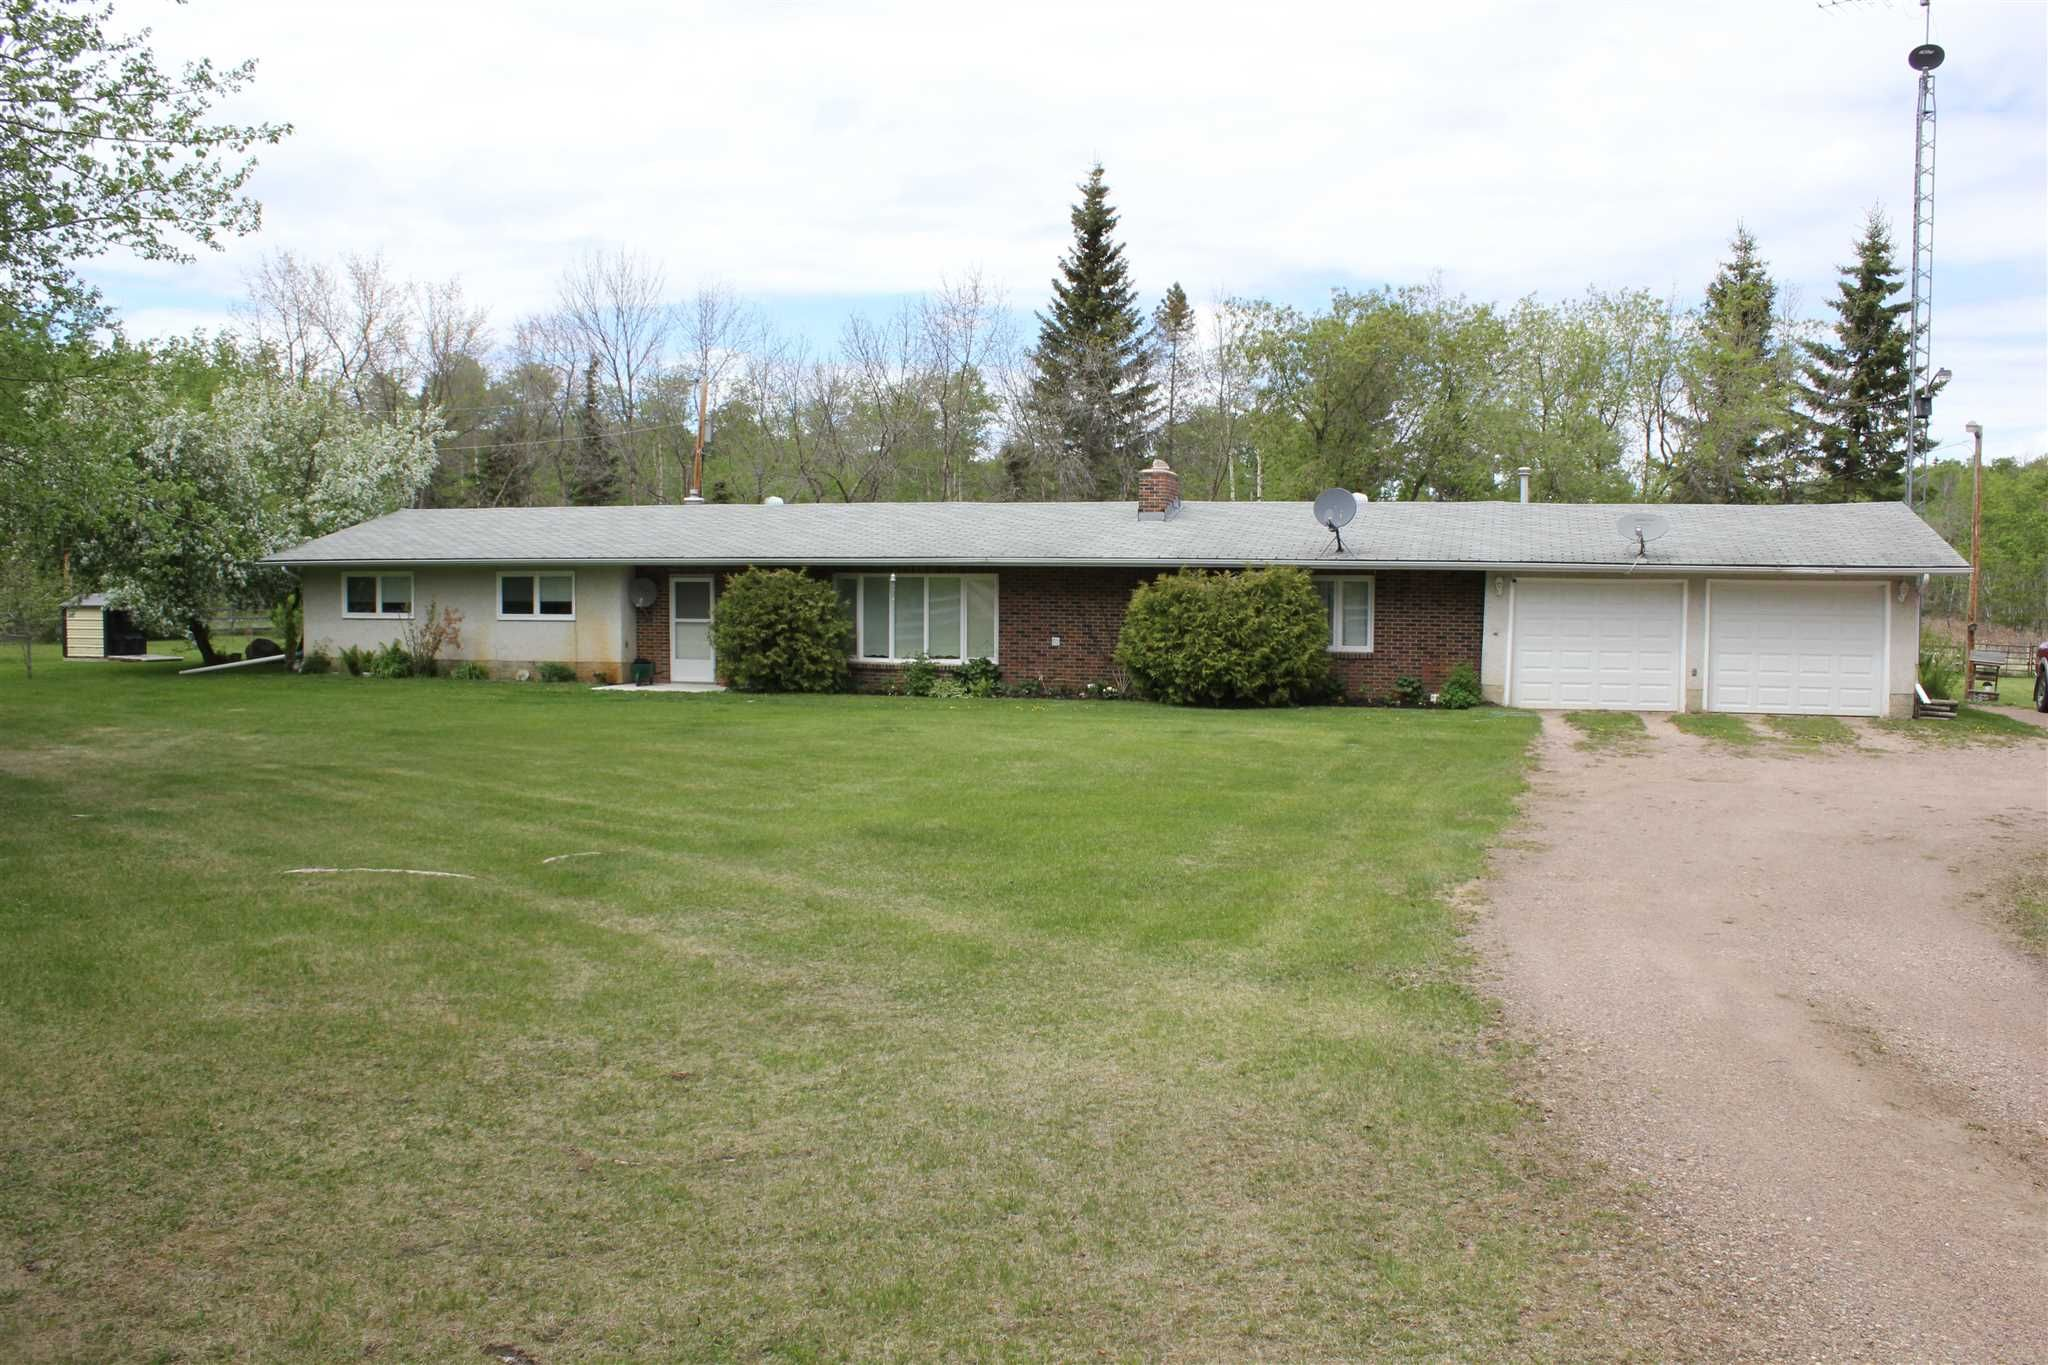 Main Photo: 9224 S646: Rural St. Paul County House for sale : MLS®# E4247083